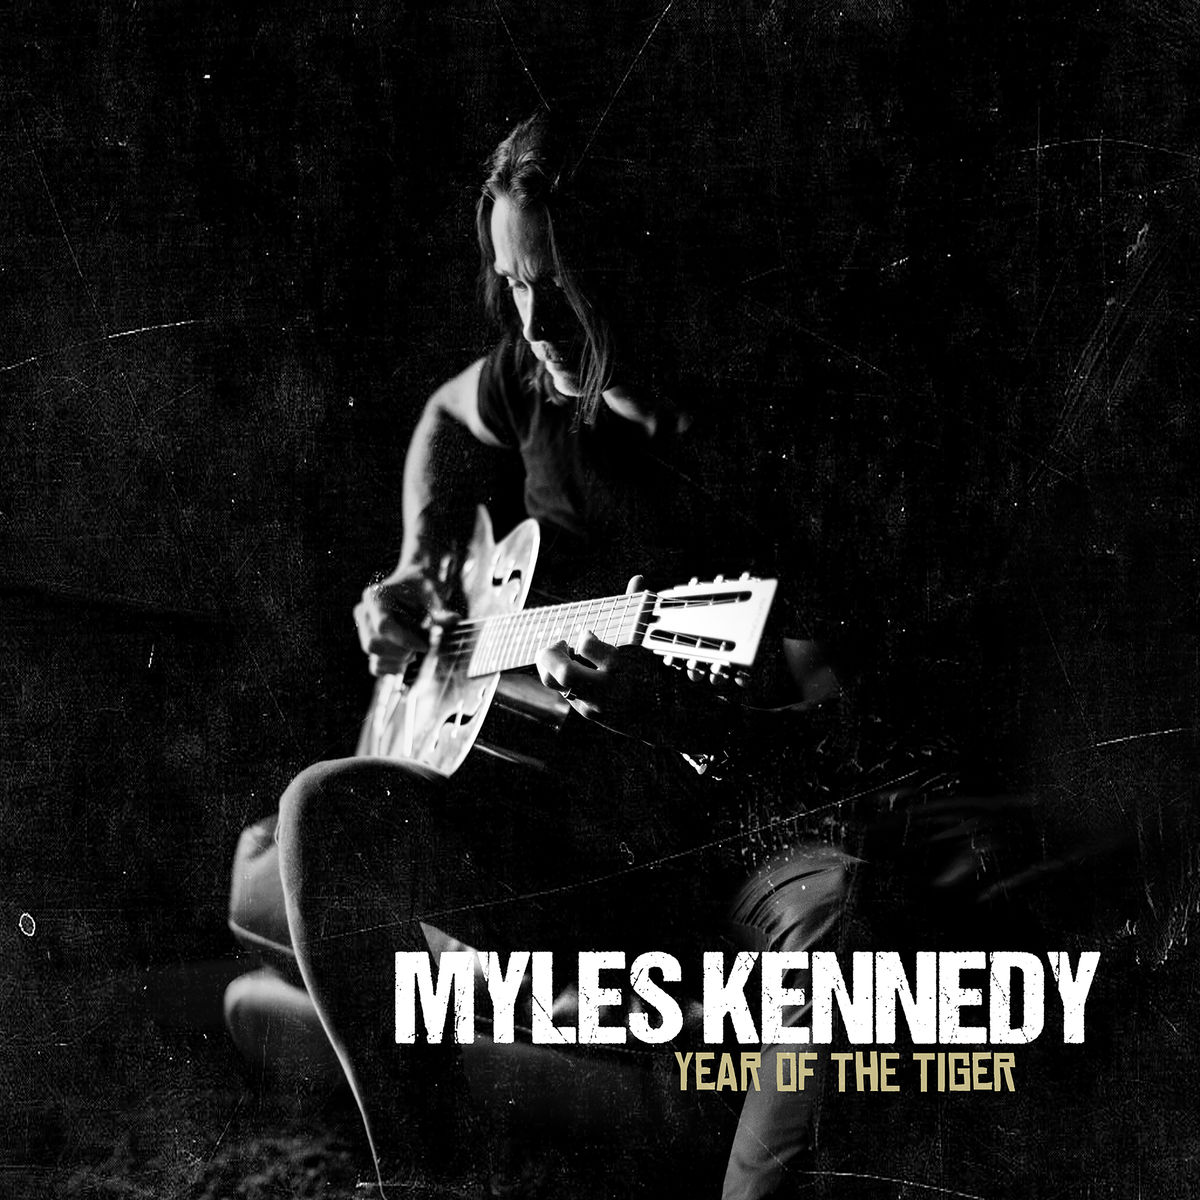 myles kennedy year of the tiger album cover